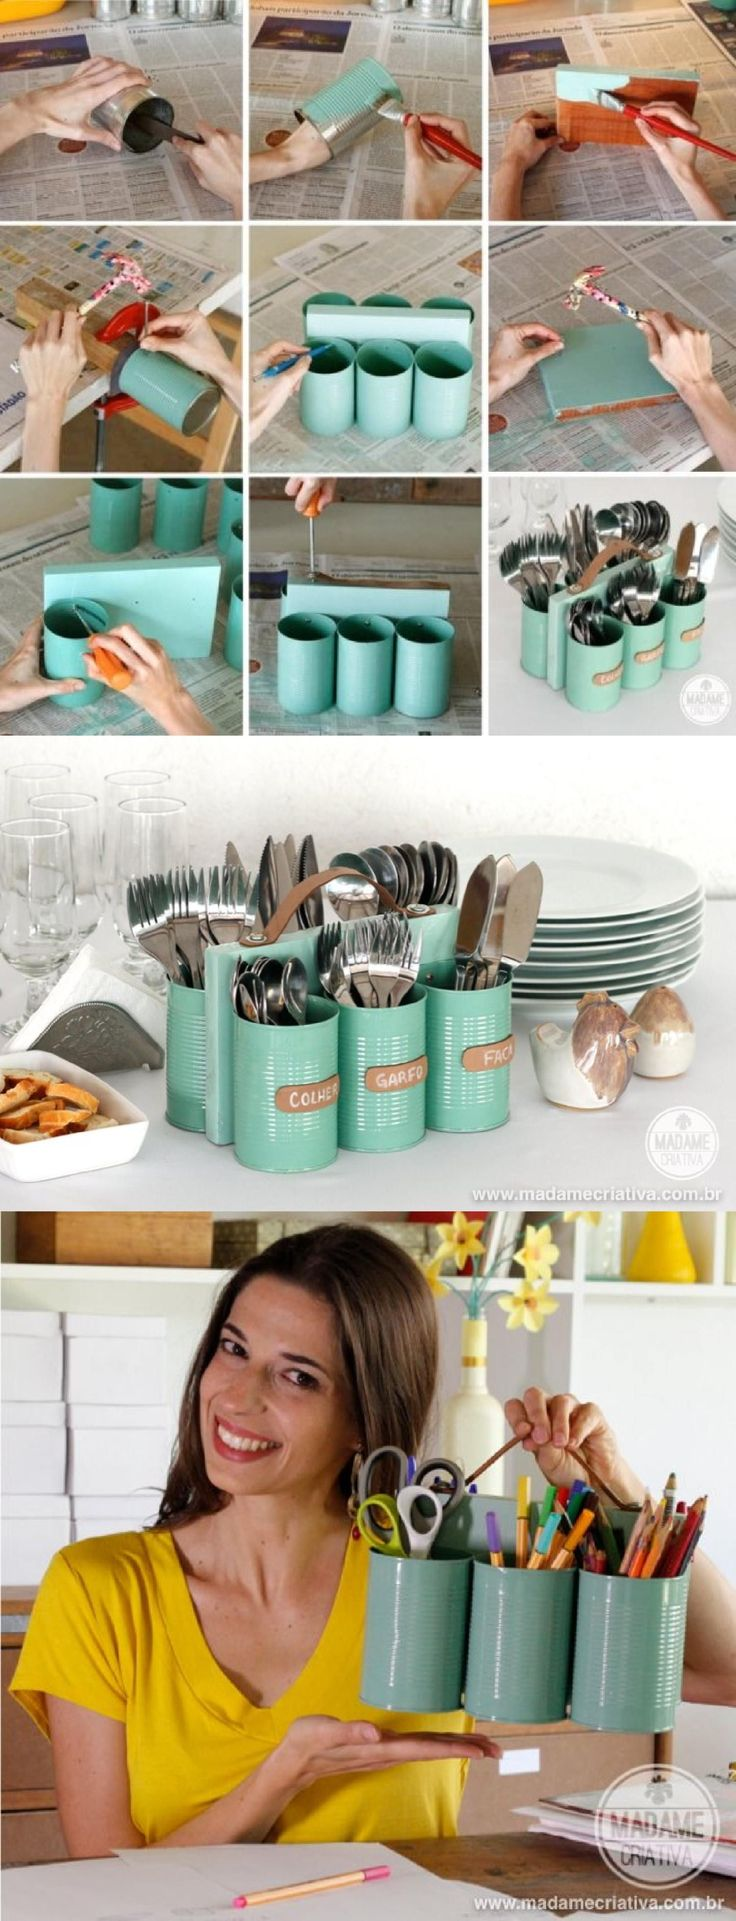 Cutlery holder with tin cans | Porta cubiertos reutilizando latas - Vía madamecriativa.com.br Más